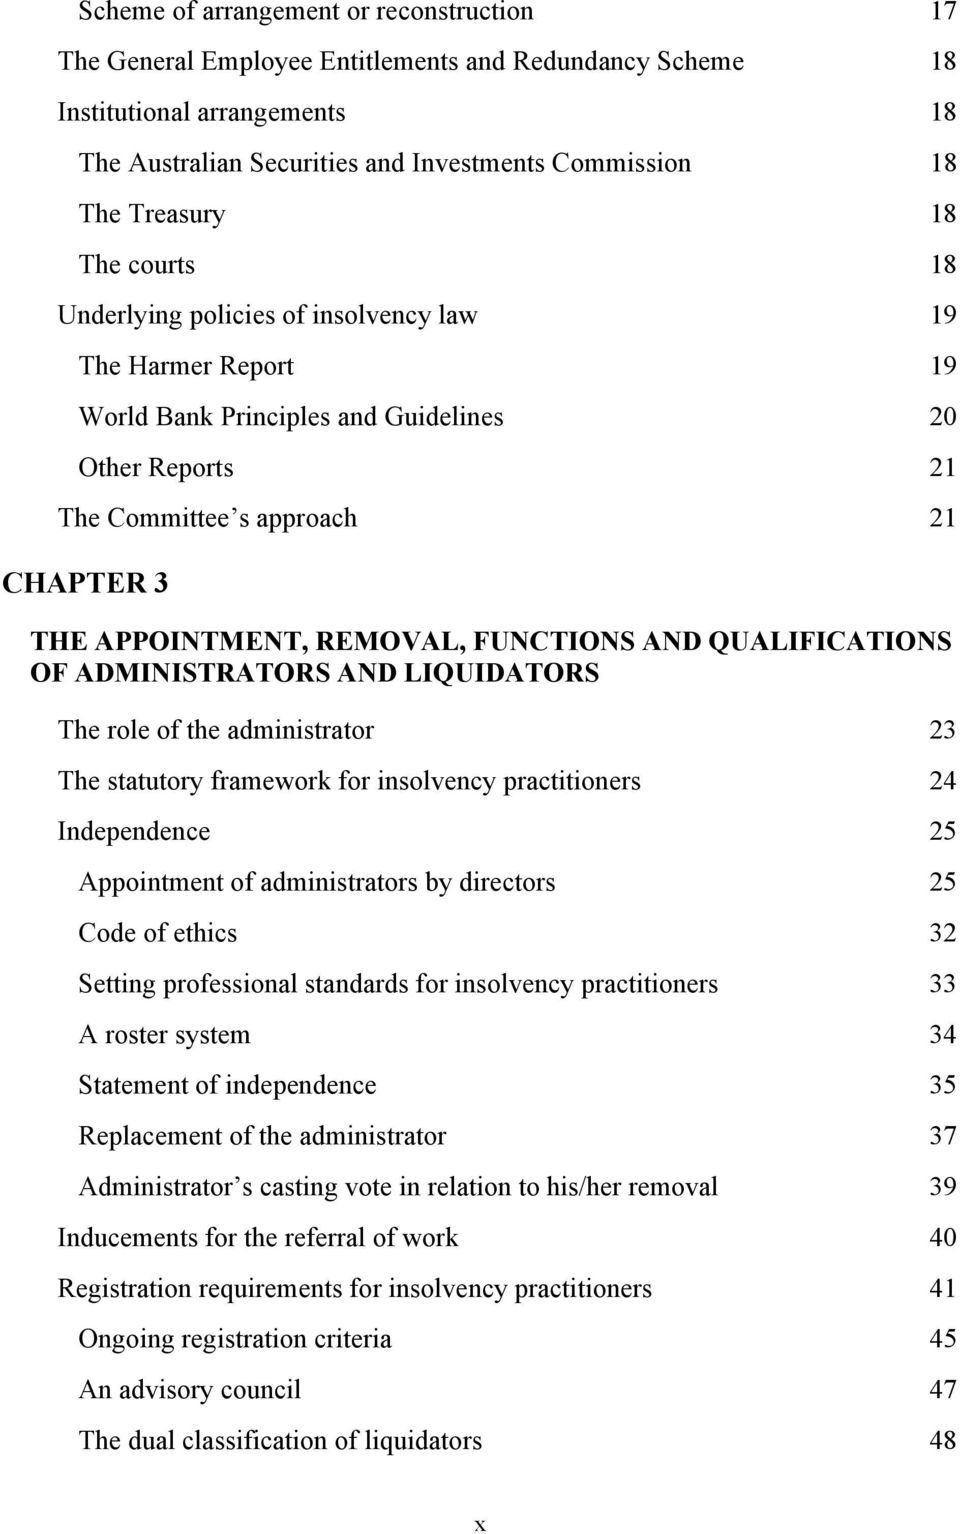 REMOVAL, FUNCTIONS AND QUALIFICATIONS OF ADMINISTRATORS AND LIQUIDATORS The role of the administrator 23 The statutory framework for insolvency practitioners 24 Independence 25 Appointment of